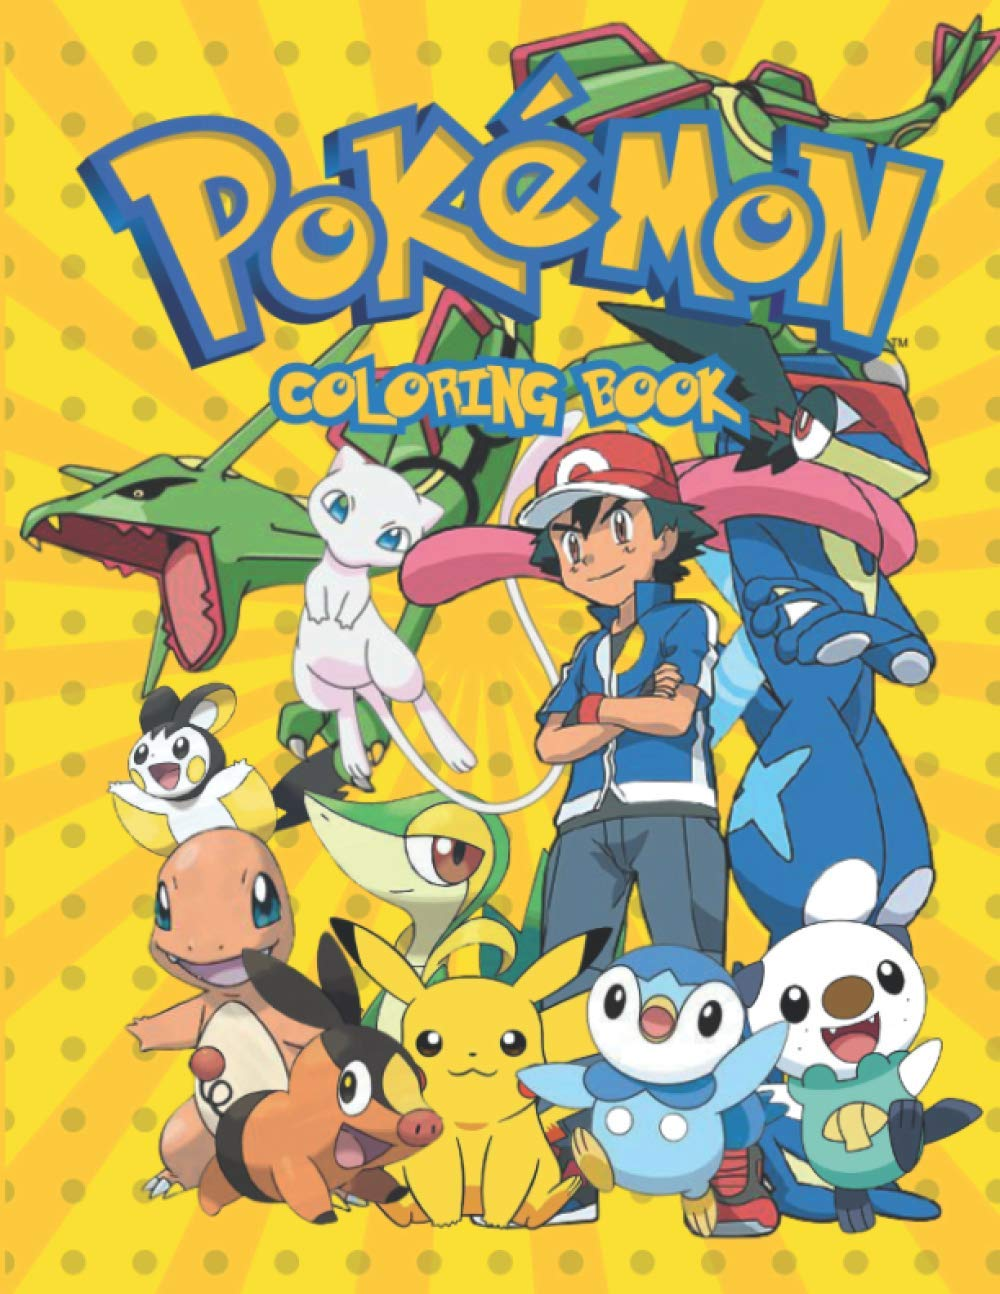 Pokemon Coloring Book: JUMBO Coloring Book For Kids | Ages 1-15+ Pokemon Coloring Book Gift For Children